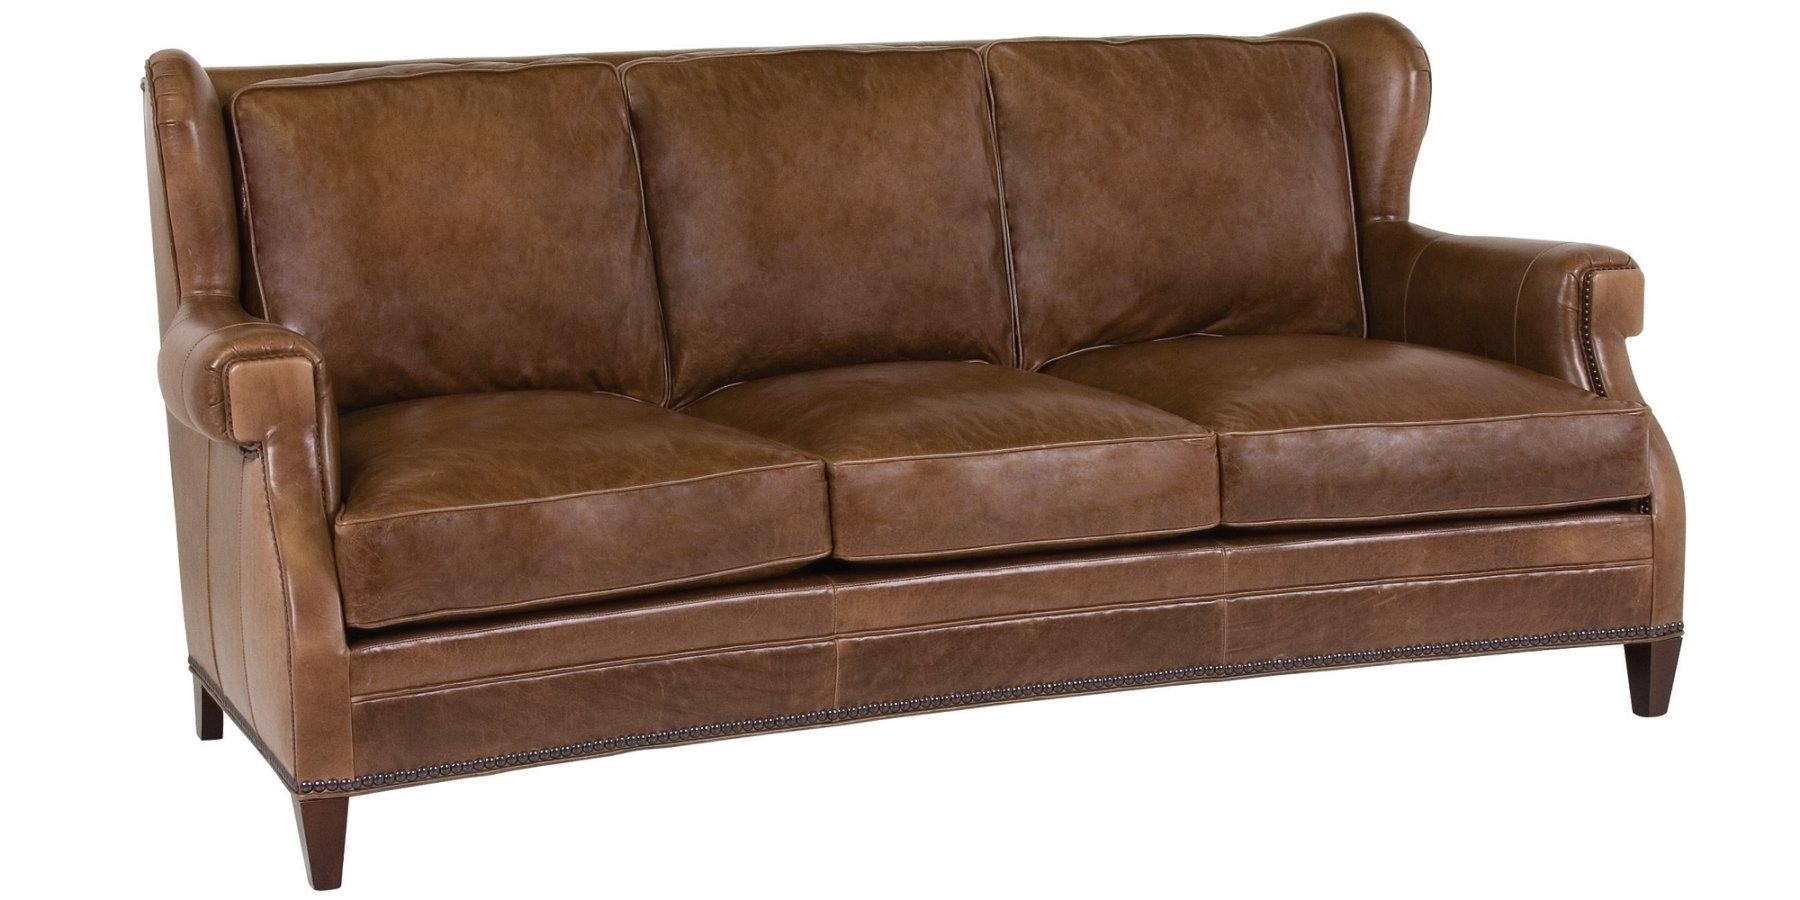 Leather Furniture | Club Furniture With Sofas With High Backs (Image 8 of 20)